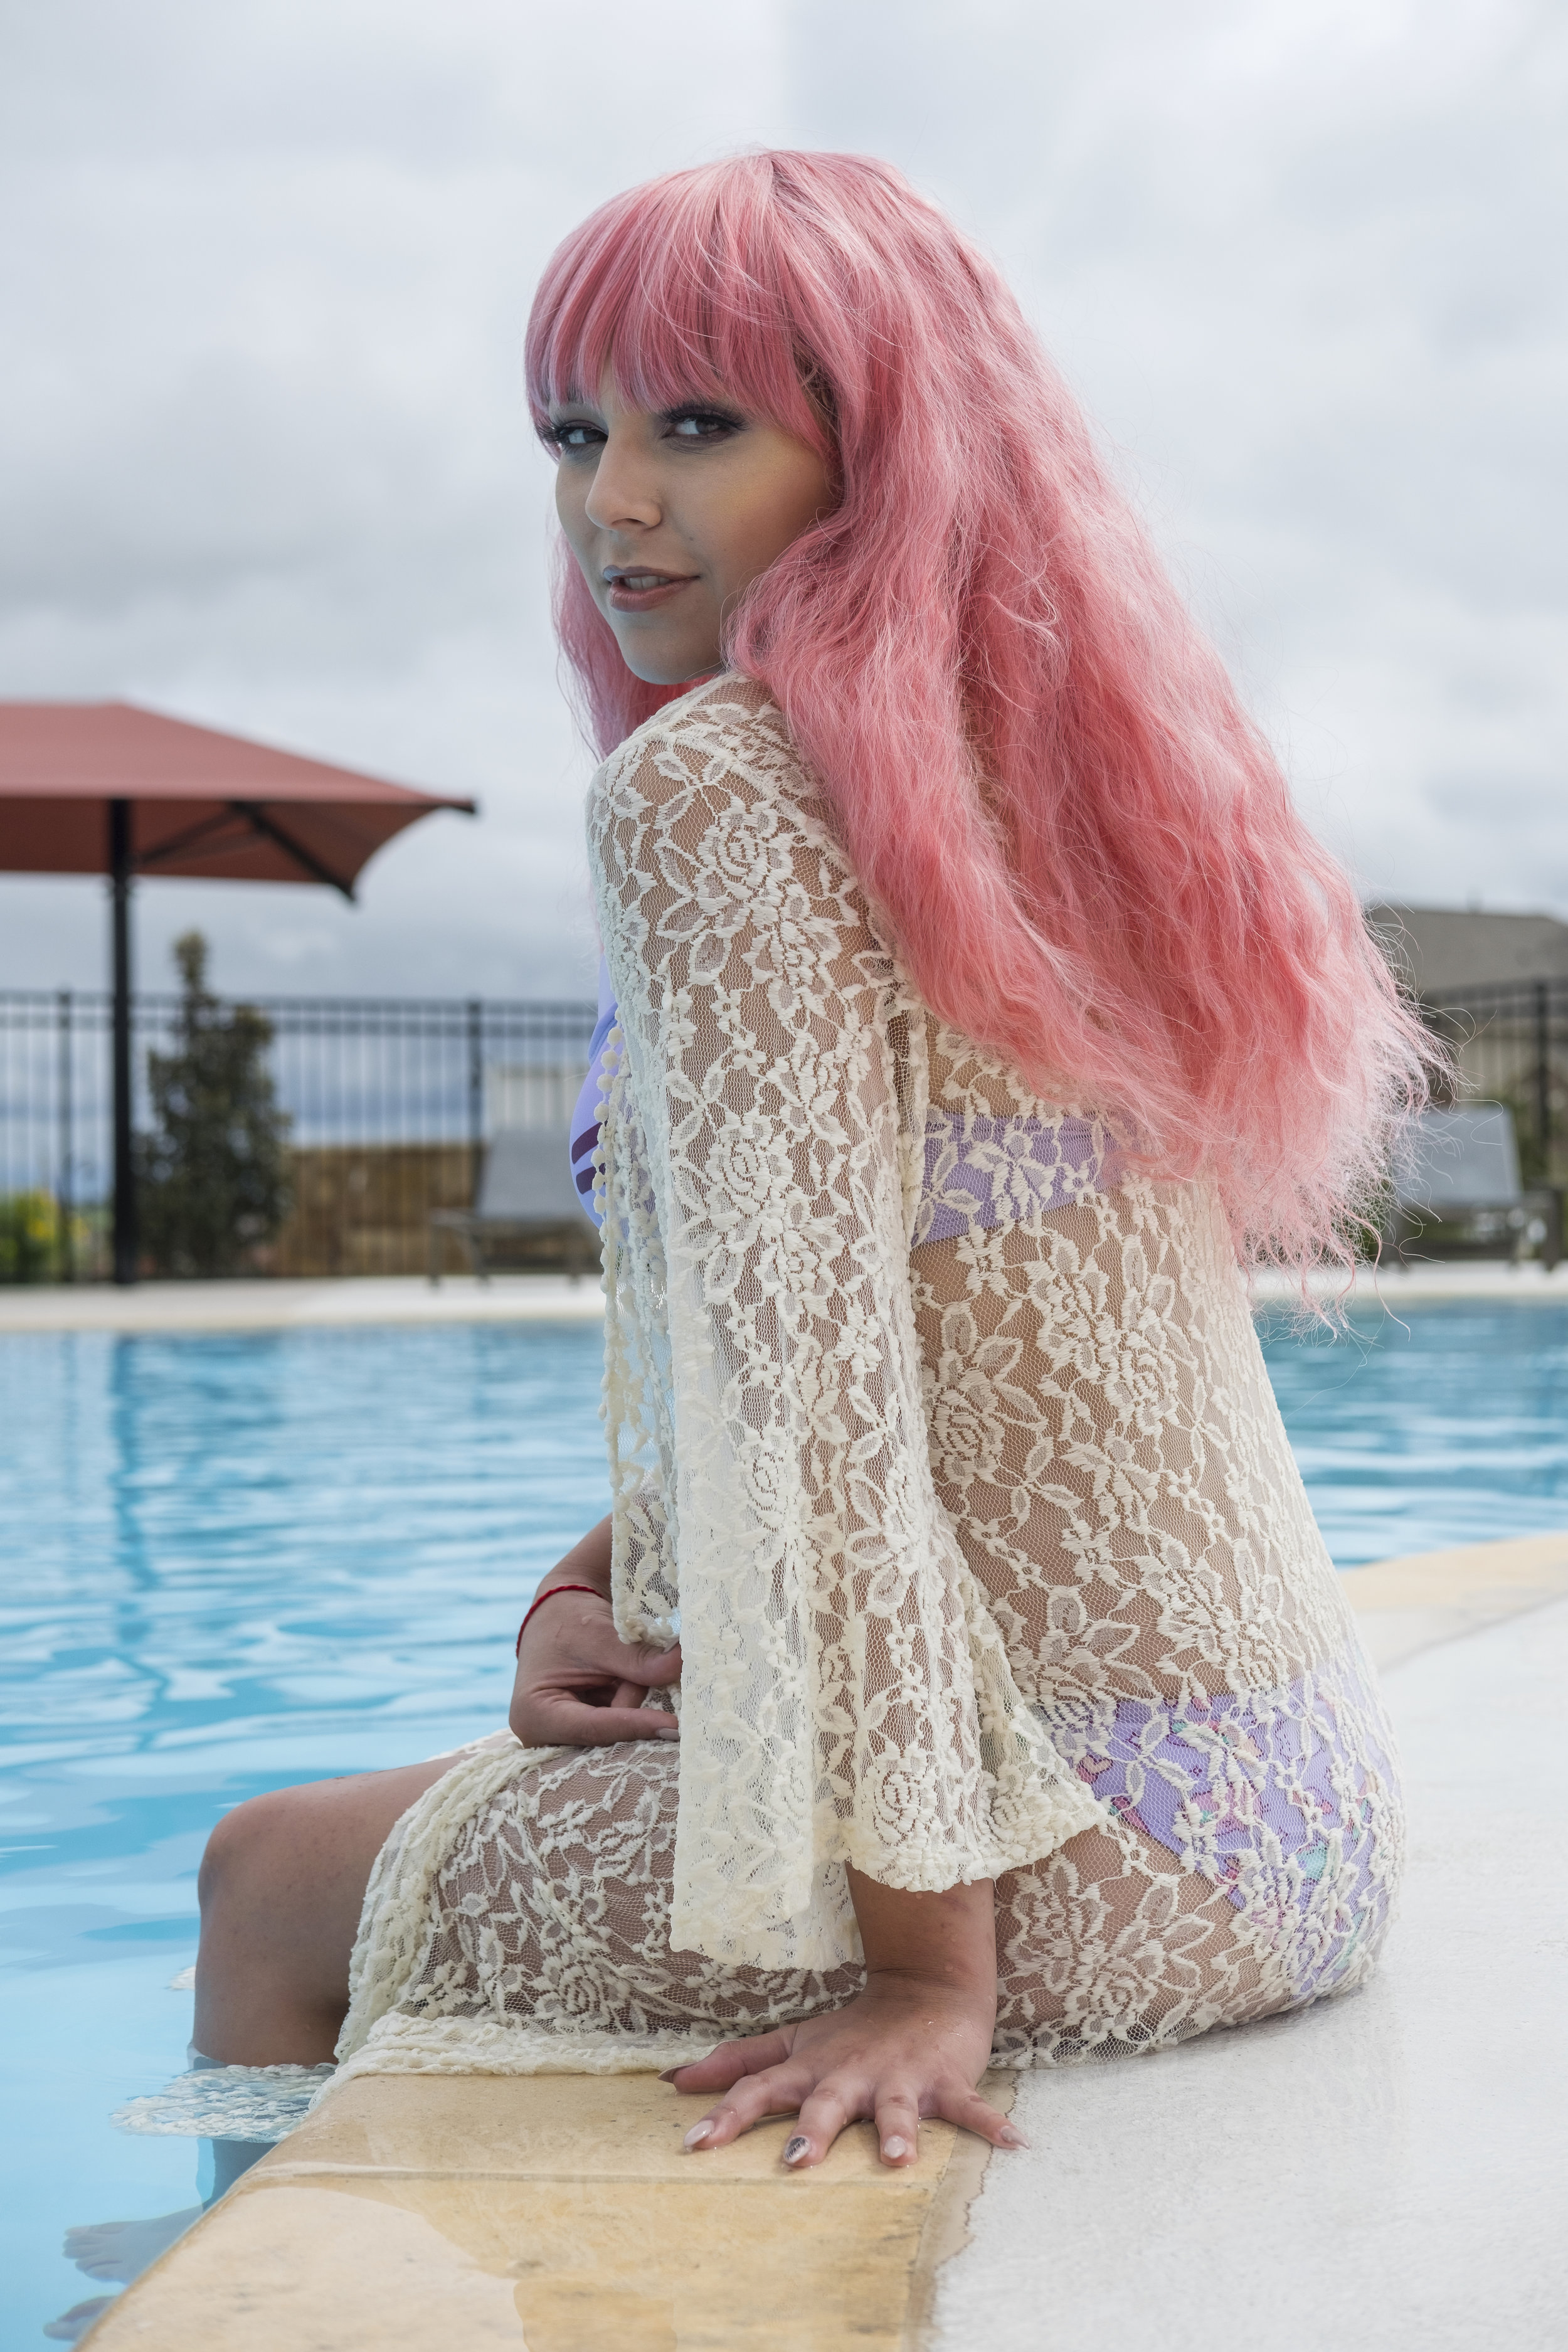 Mermaid Child in a Pusheen swimsuit at a swimming pool